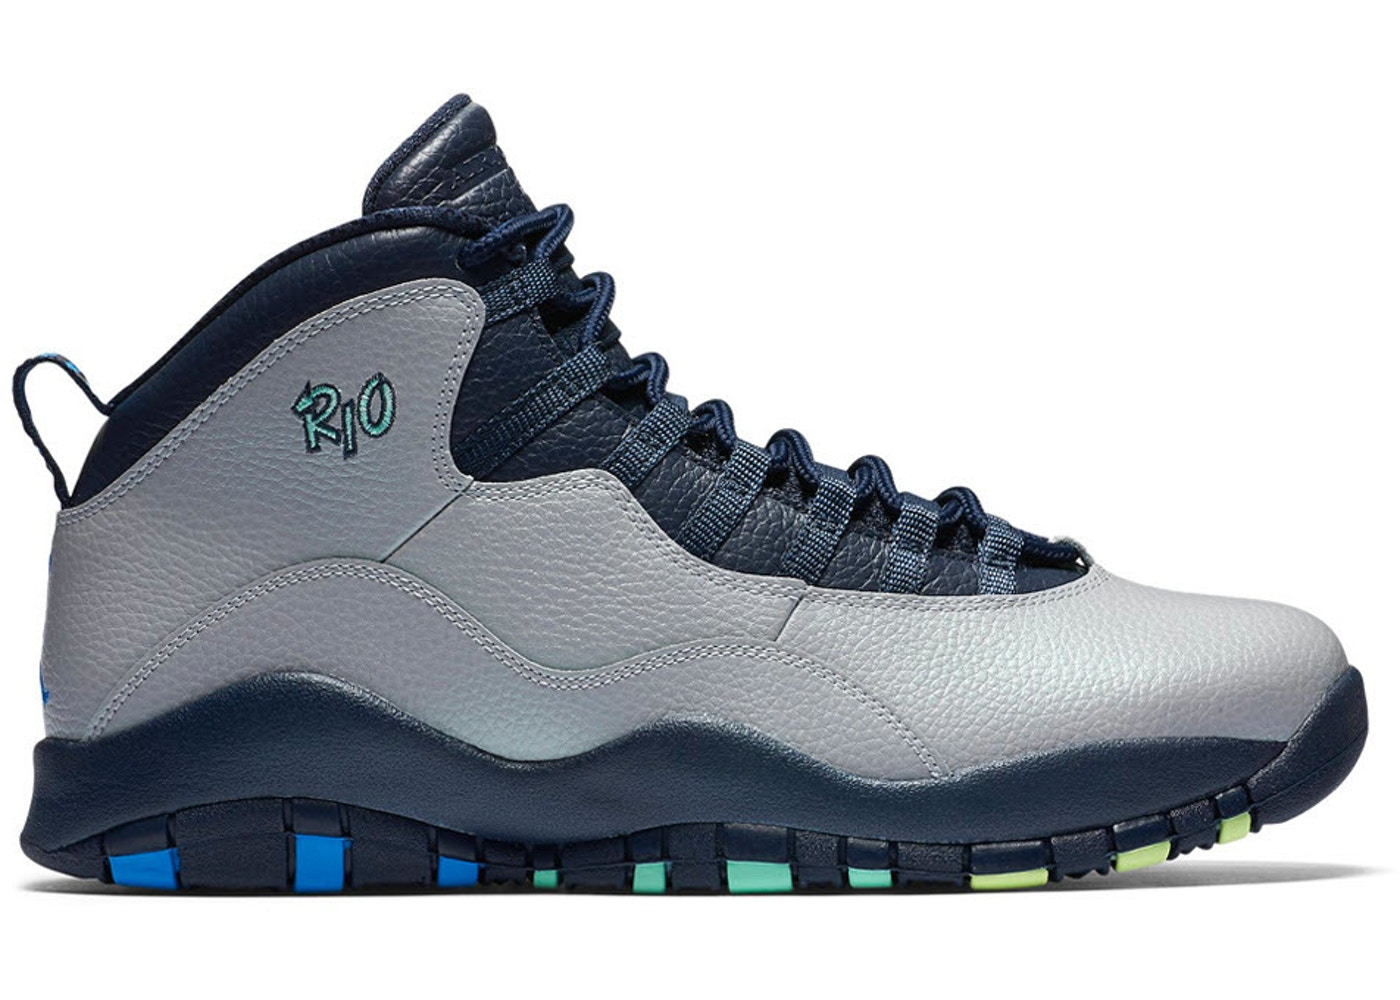 hot sale online c10e9 c2831 Jordan 10 Retro Rio